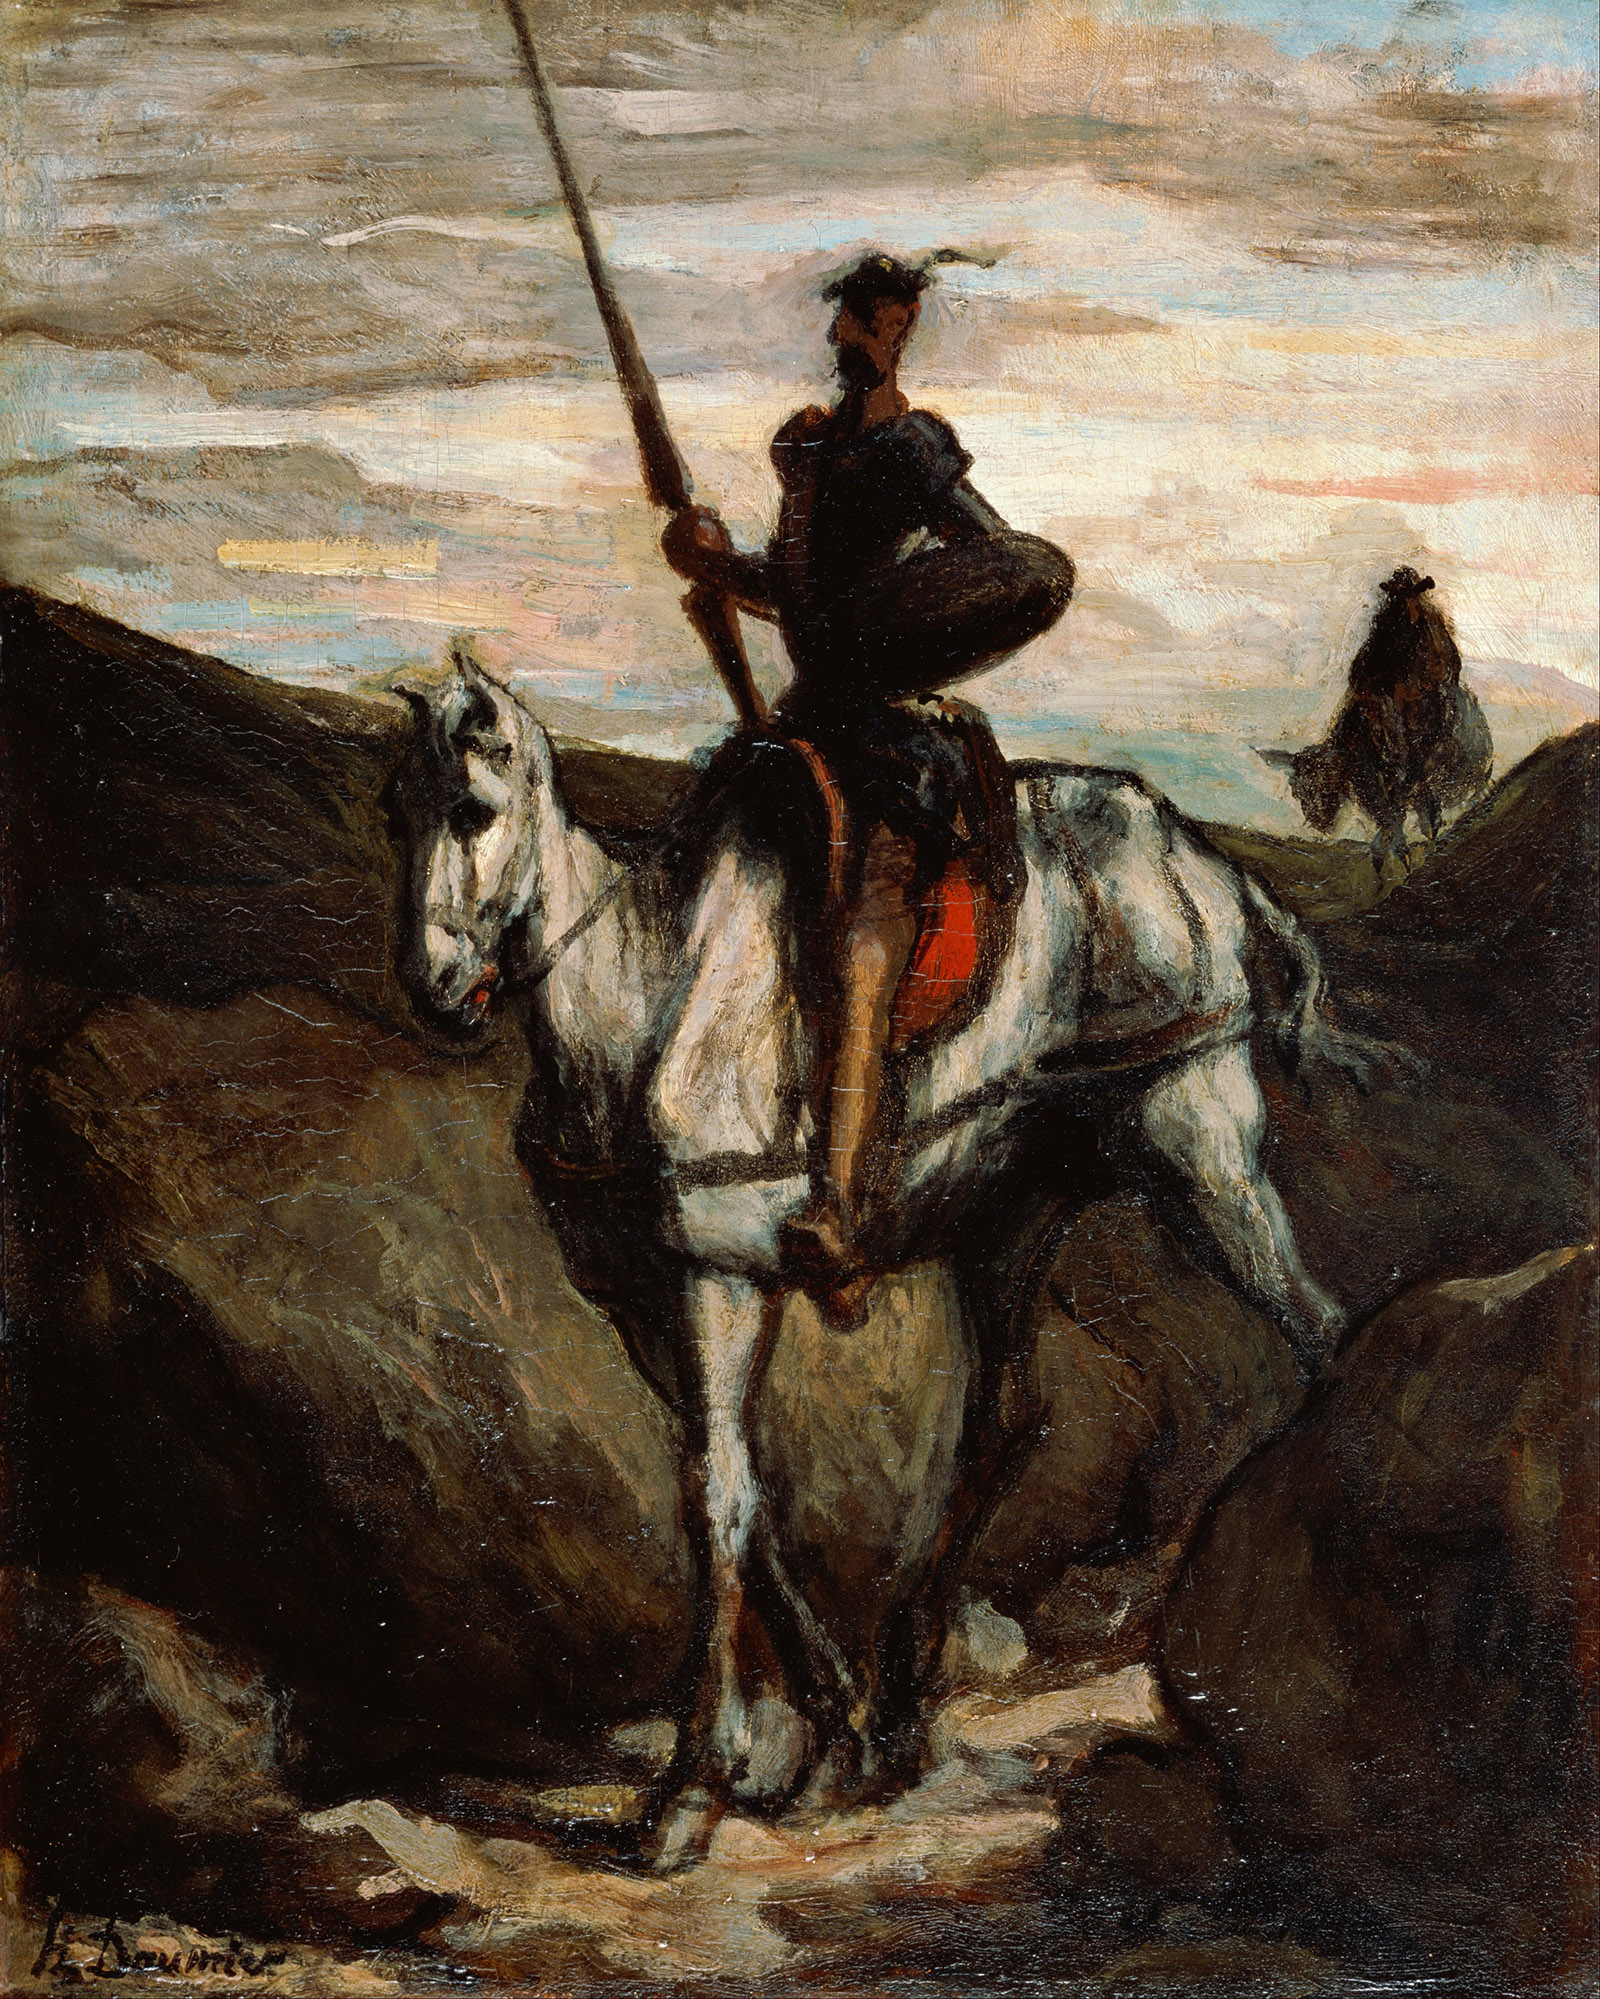 Don Quixote in the Mountains; painting by Honoré Daumier